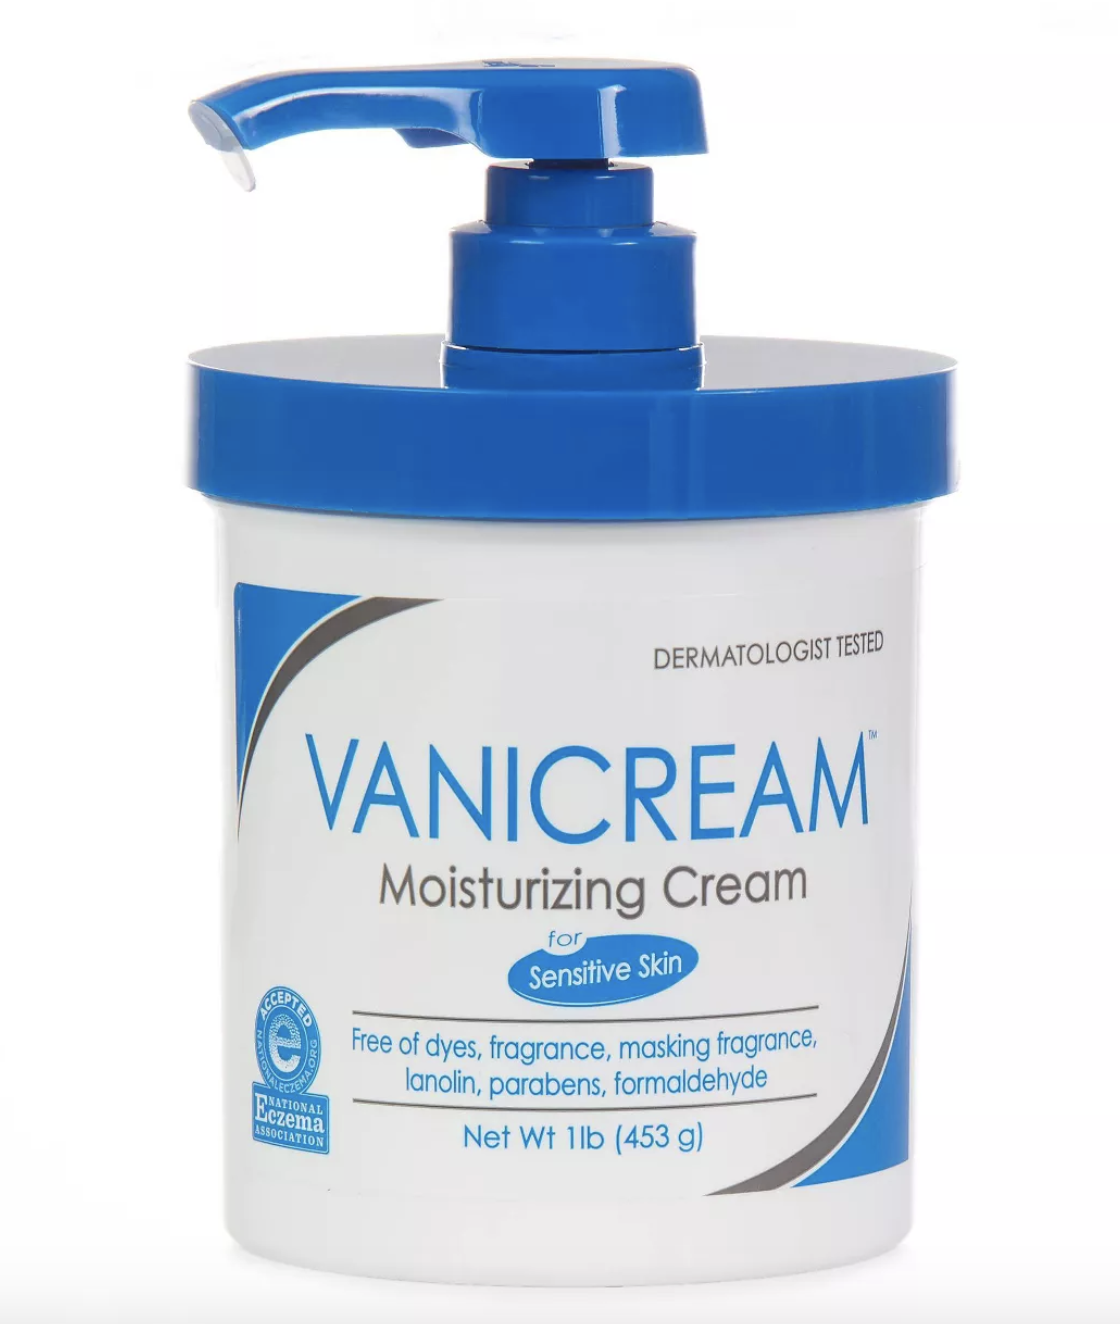 the container of vanicream featuring a pump